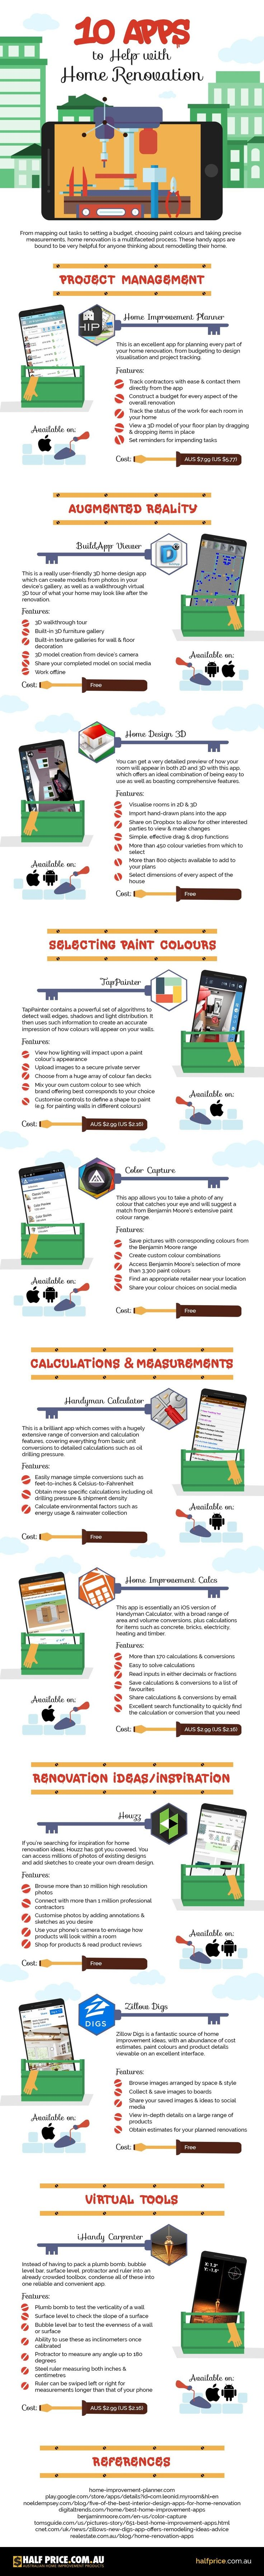 fantastic house renovation app. 10 Apps To Help With Home Renovation  Infographic 120 best App Infographics images on Pinterest Info graphics